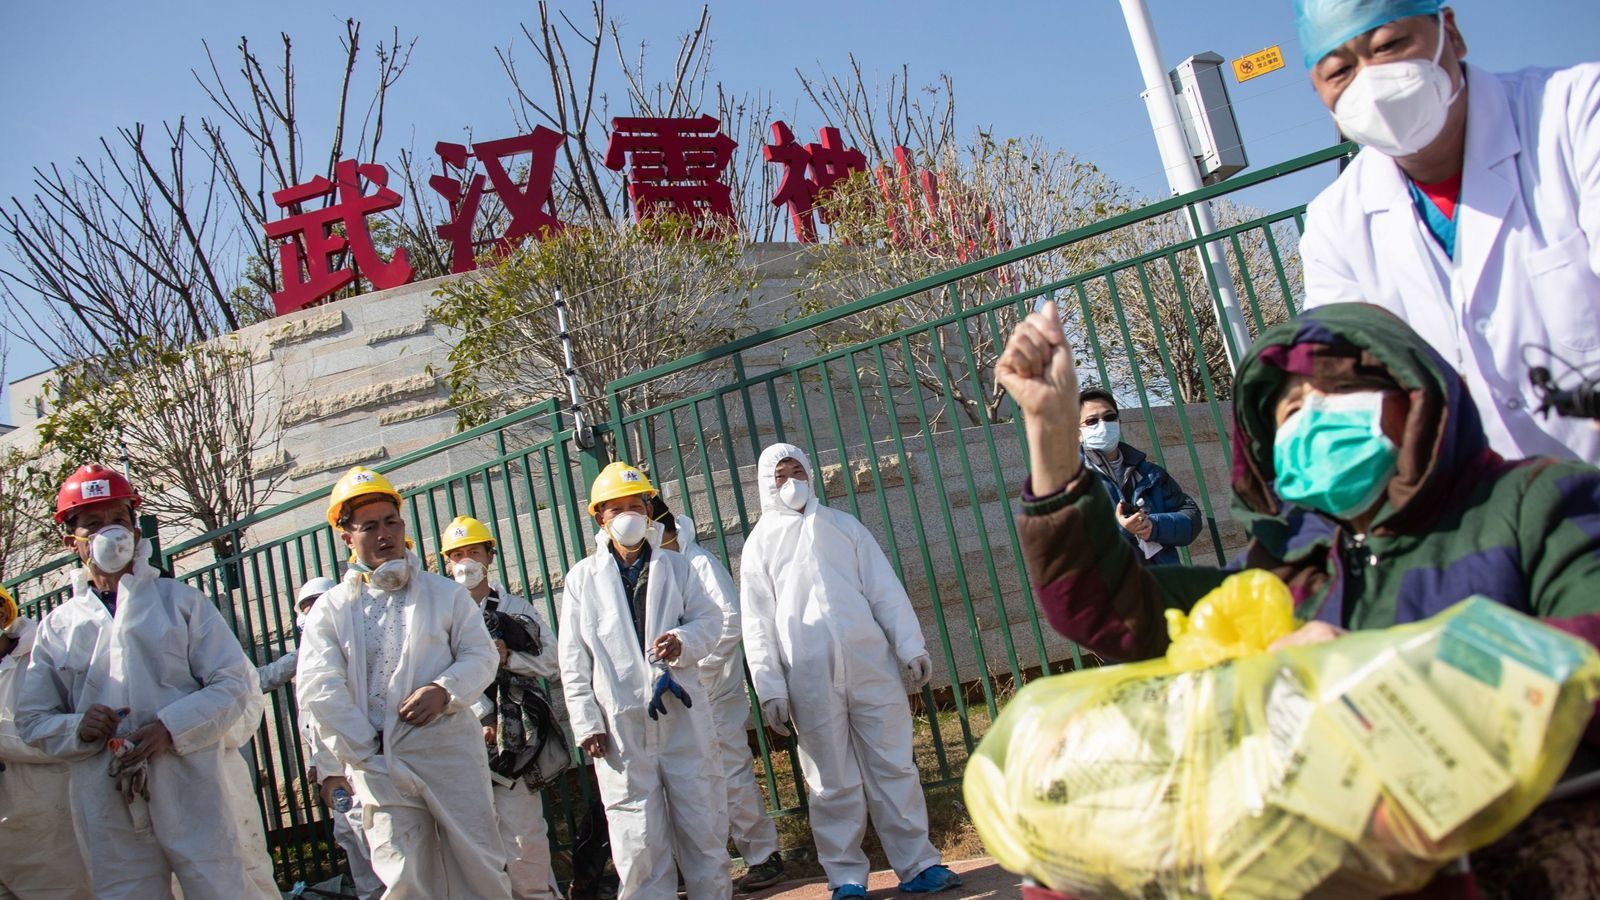 Coronavirus: Hope for China as report finds new COVID-19 cases falling